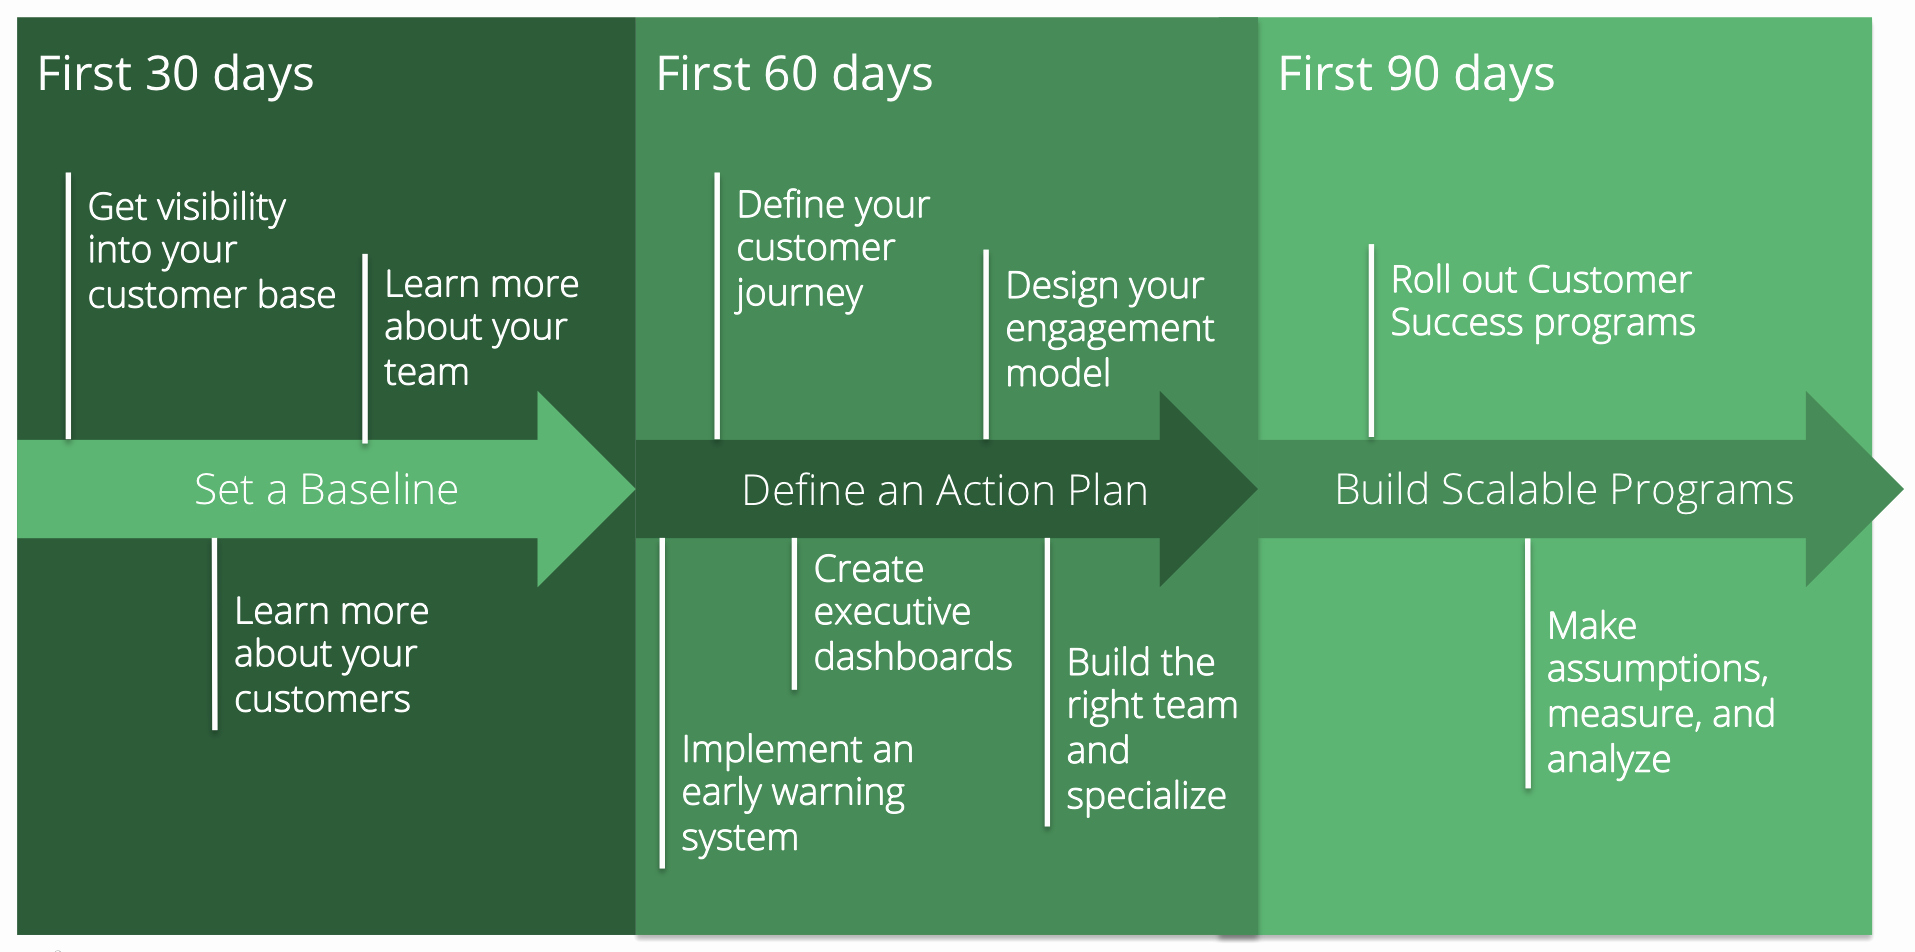 90 Days Business Plan Examples